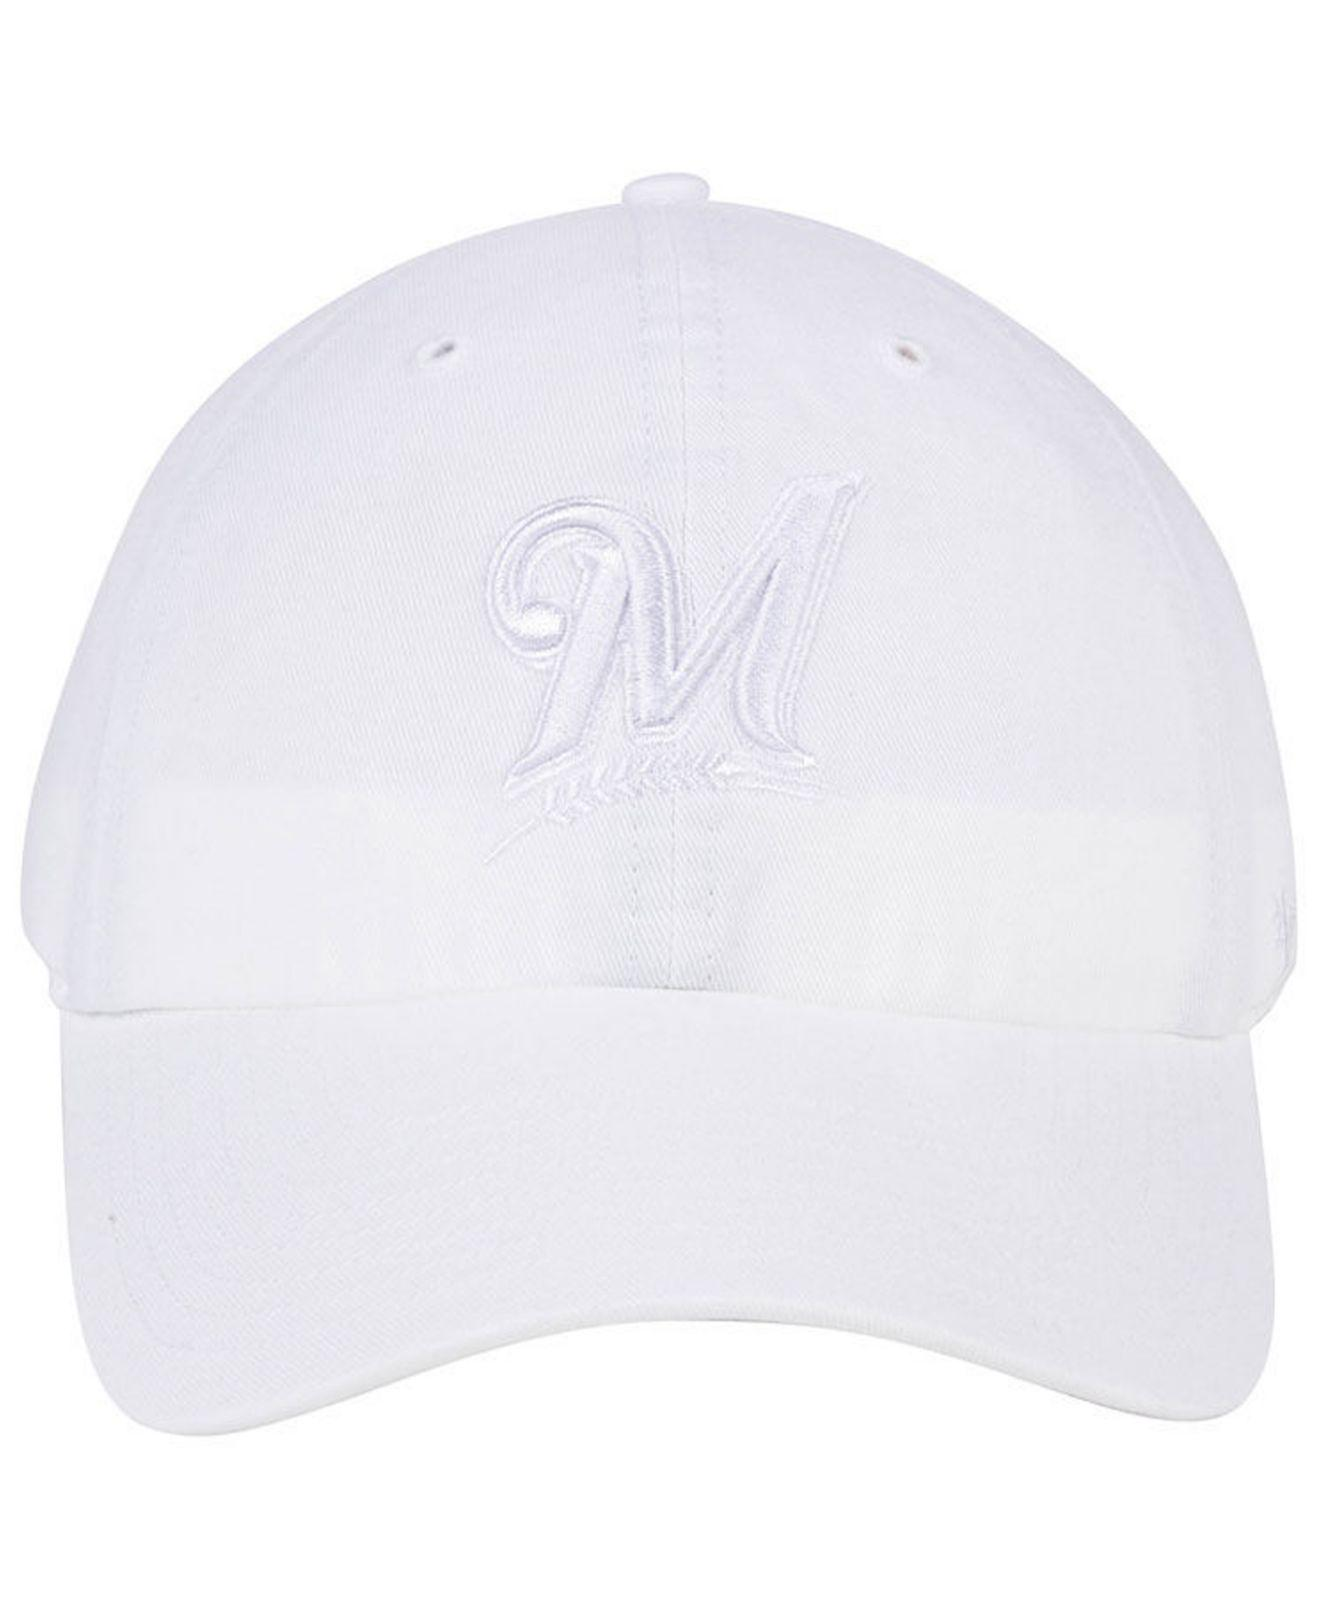 on sale a3d30 6b860 47 Brand Milwaukee Brewers White white Clean Up Cap in White for Men - Lyst